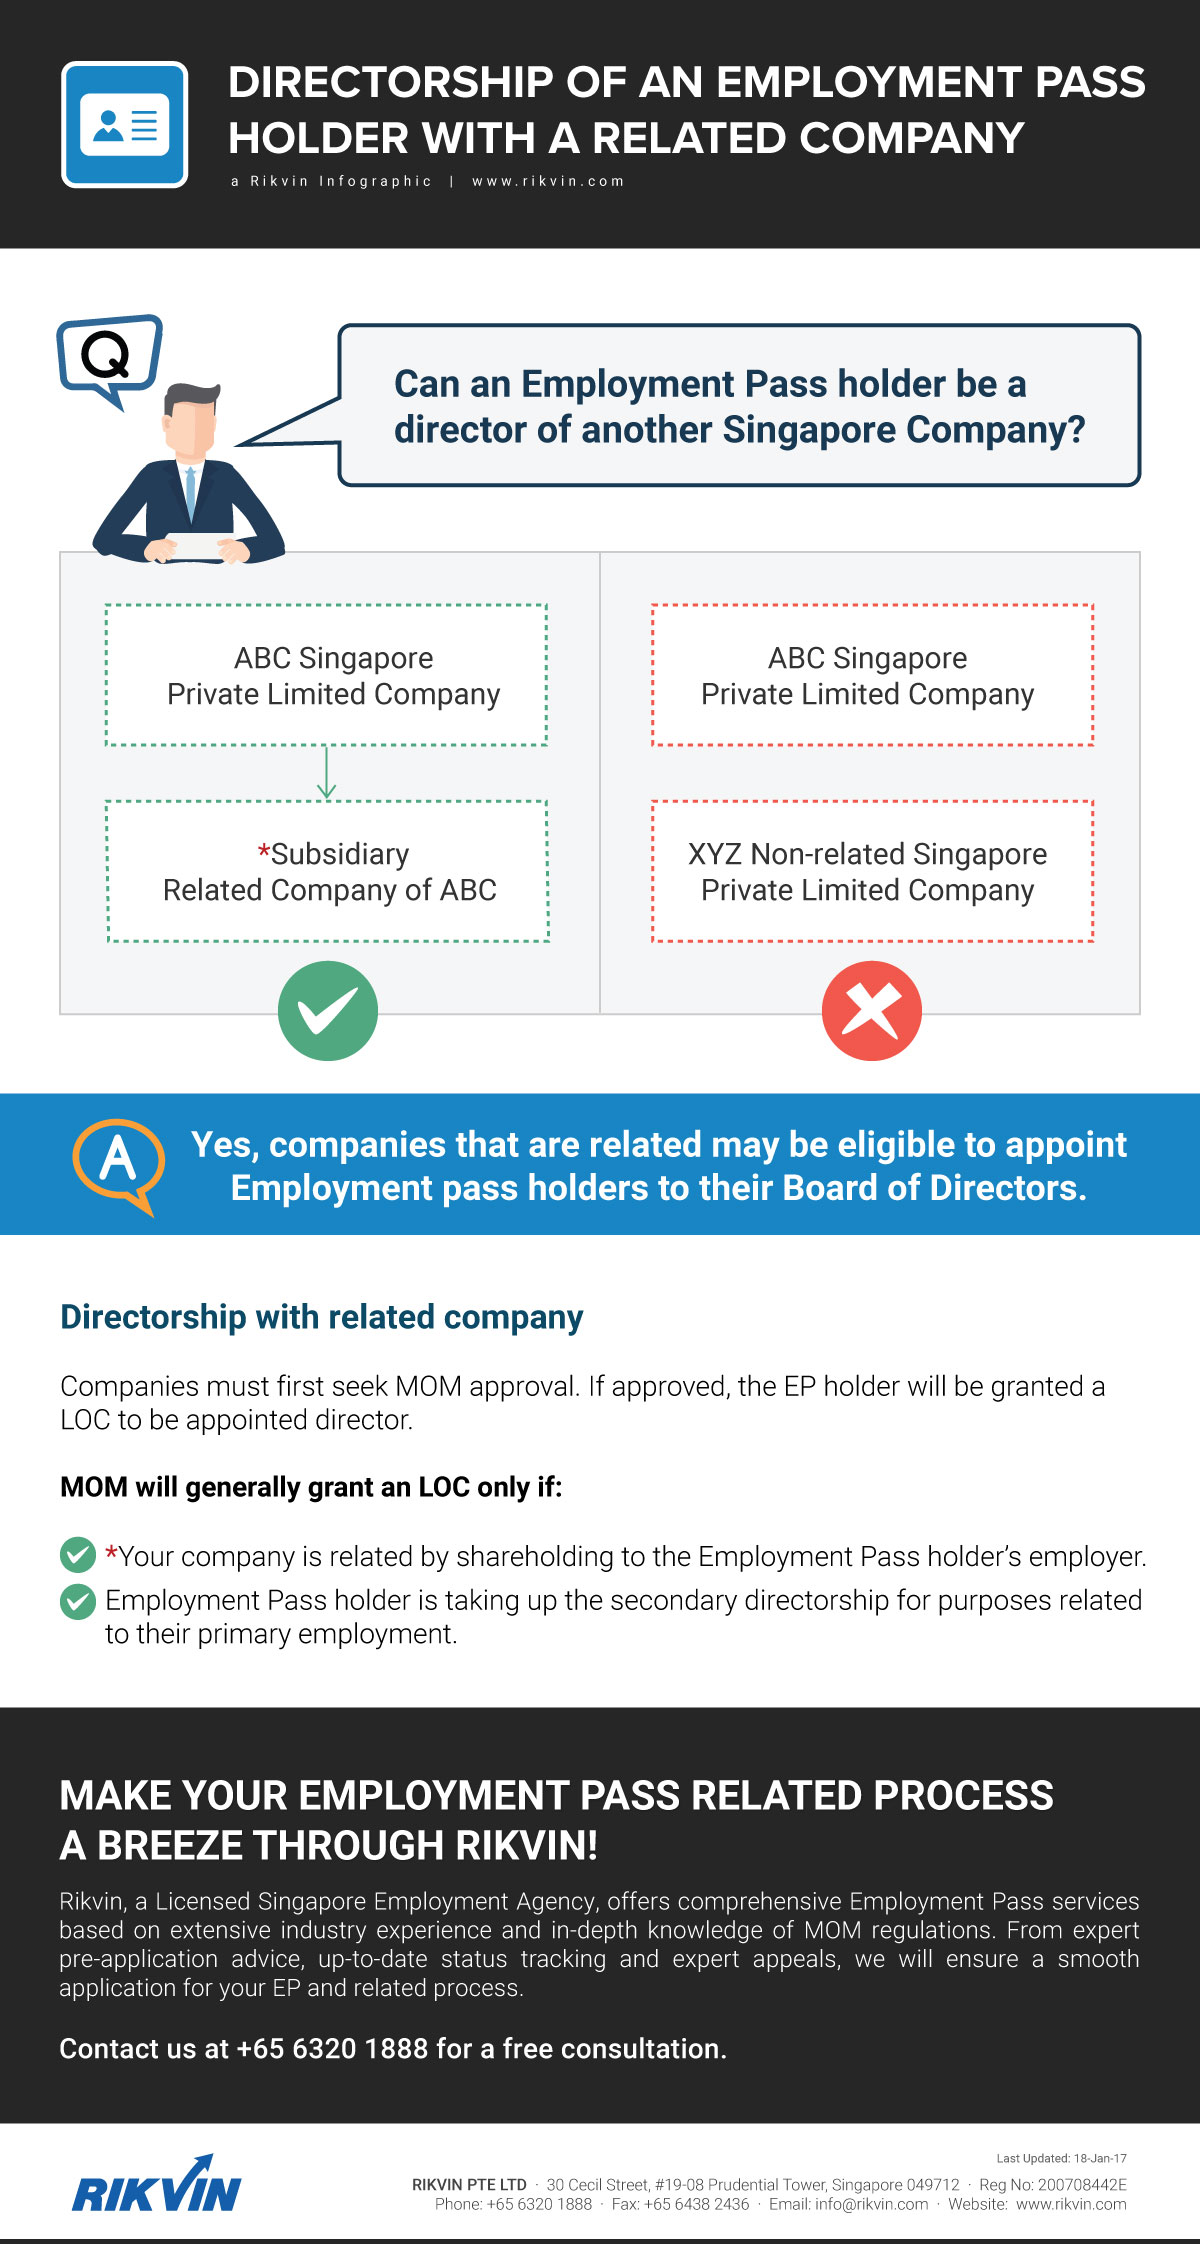 directorship-of-an-employment-pass-holder-with-a-related-company_rikvin-infographic Directorship of an Employment Pass Holder with a Related Company